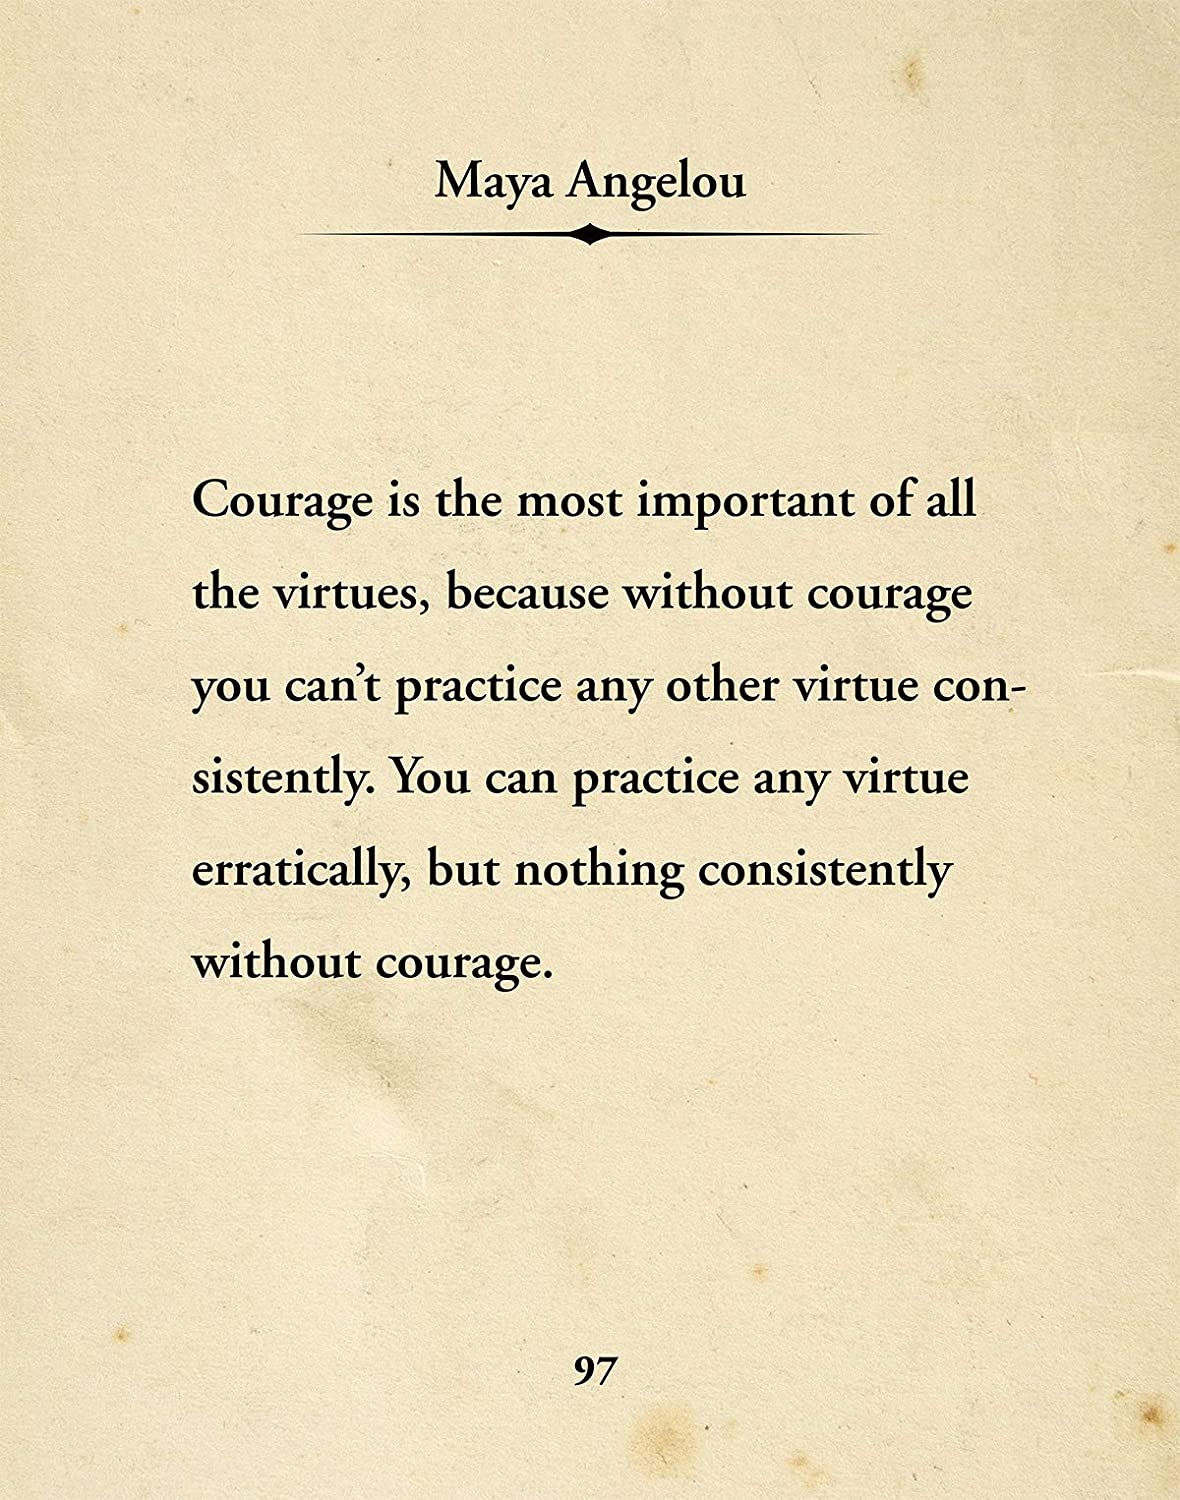 Maya Angelou Quote Wall Decor Art Print - 11x14 unframed typography book page print - great gift for book and literary fans